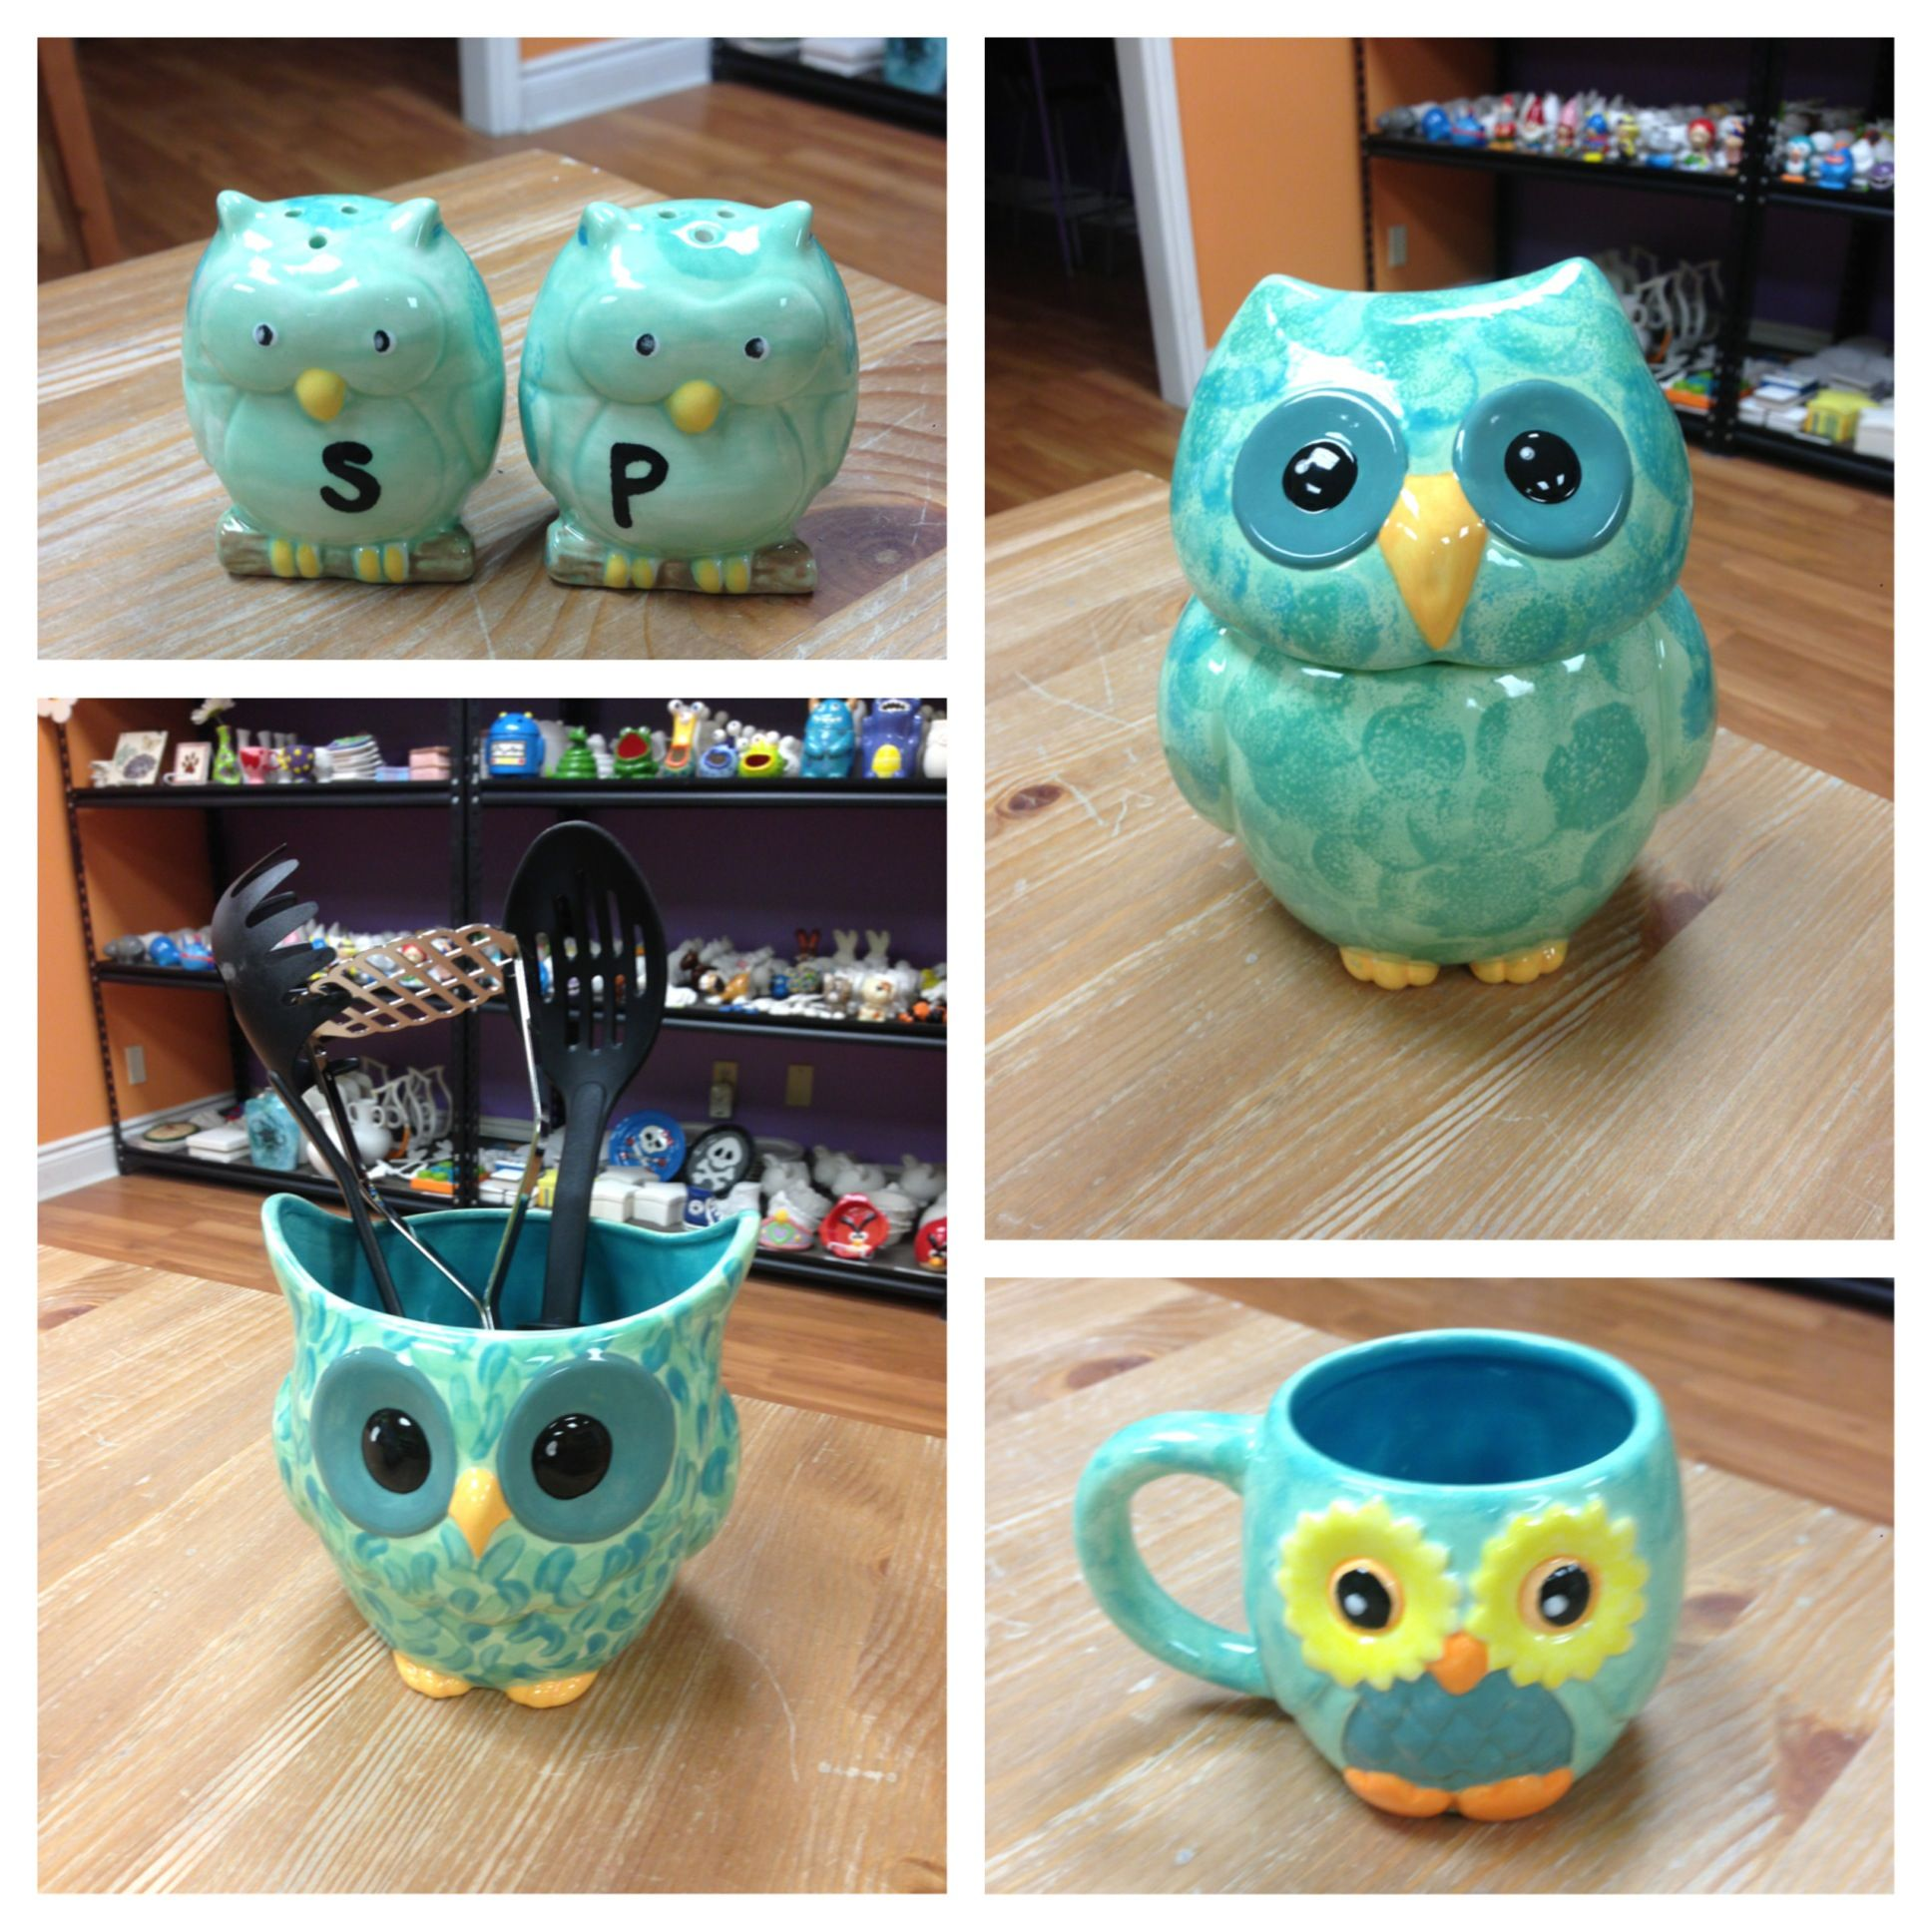 Owl Kitchen Items So Cute Love The Colors And Of Course Owls Owl Kitchen Decor Owl Kitchen Owl Decor